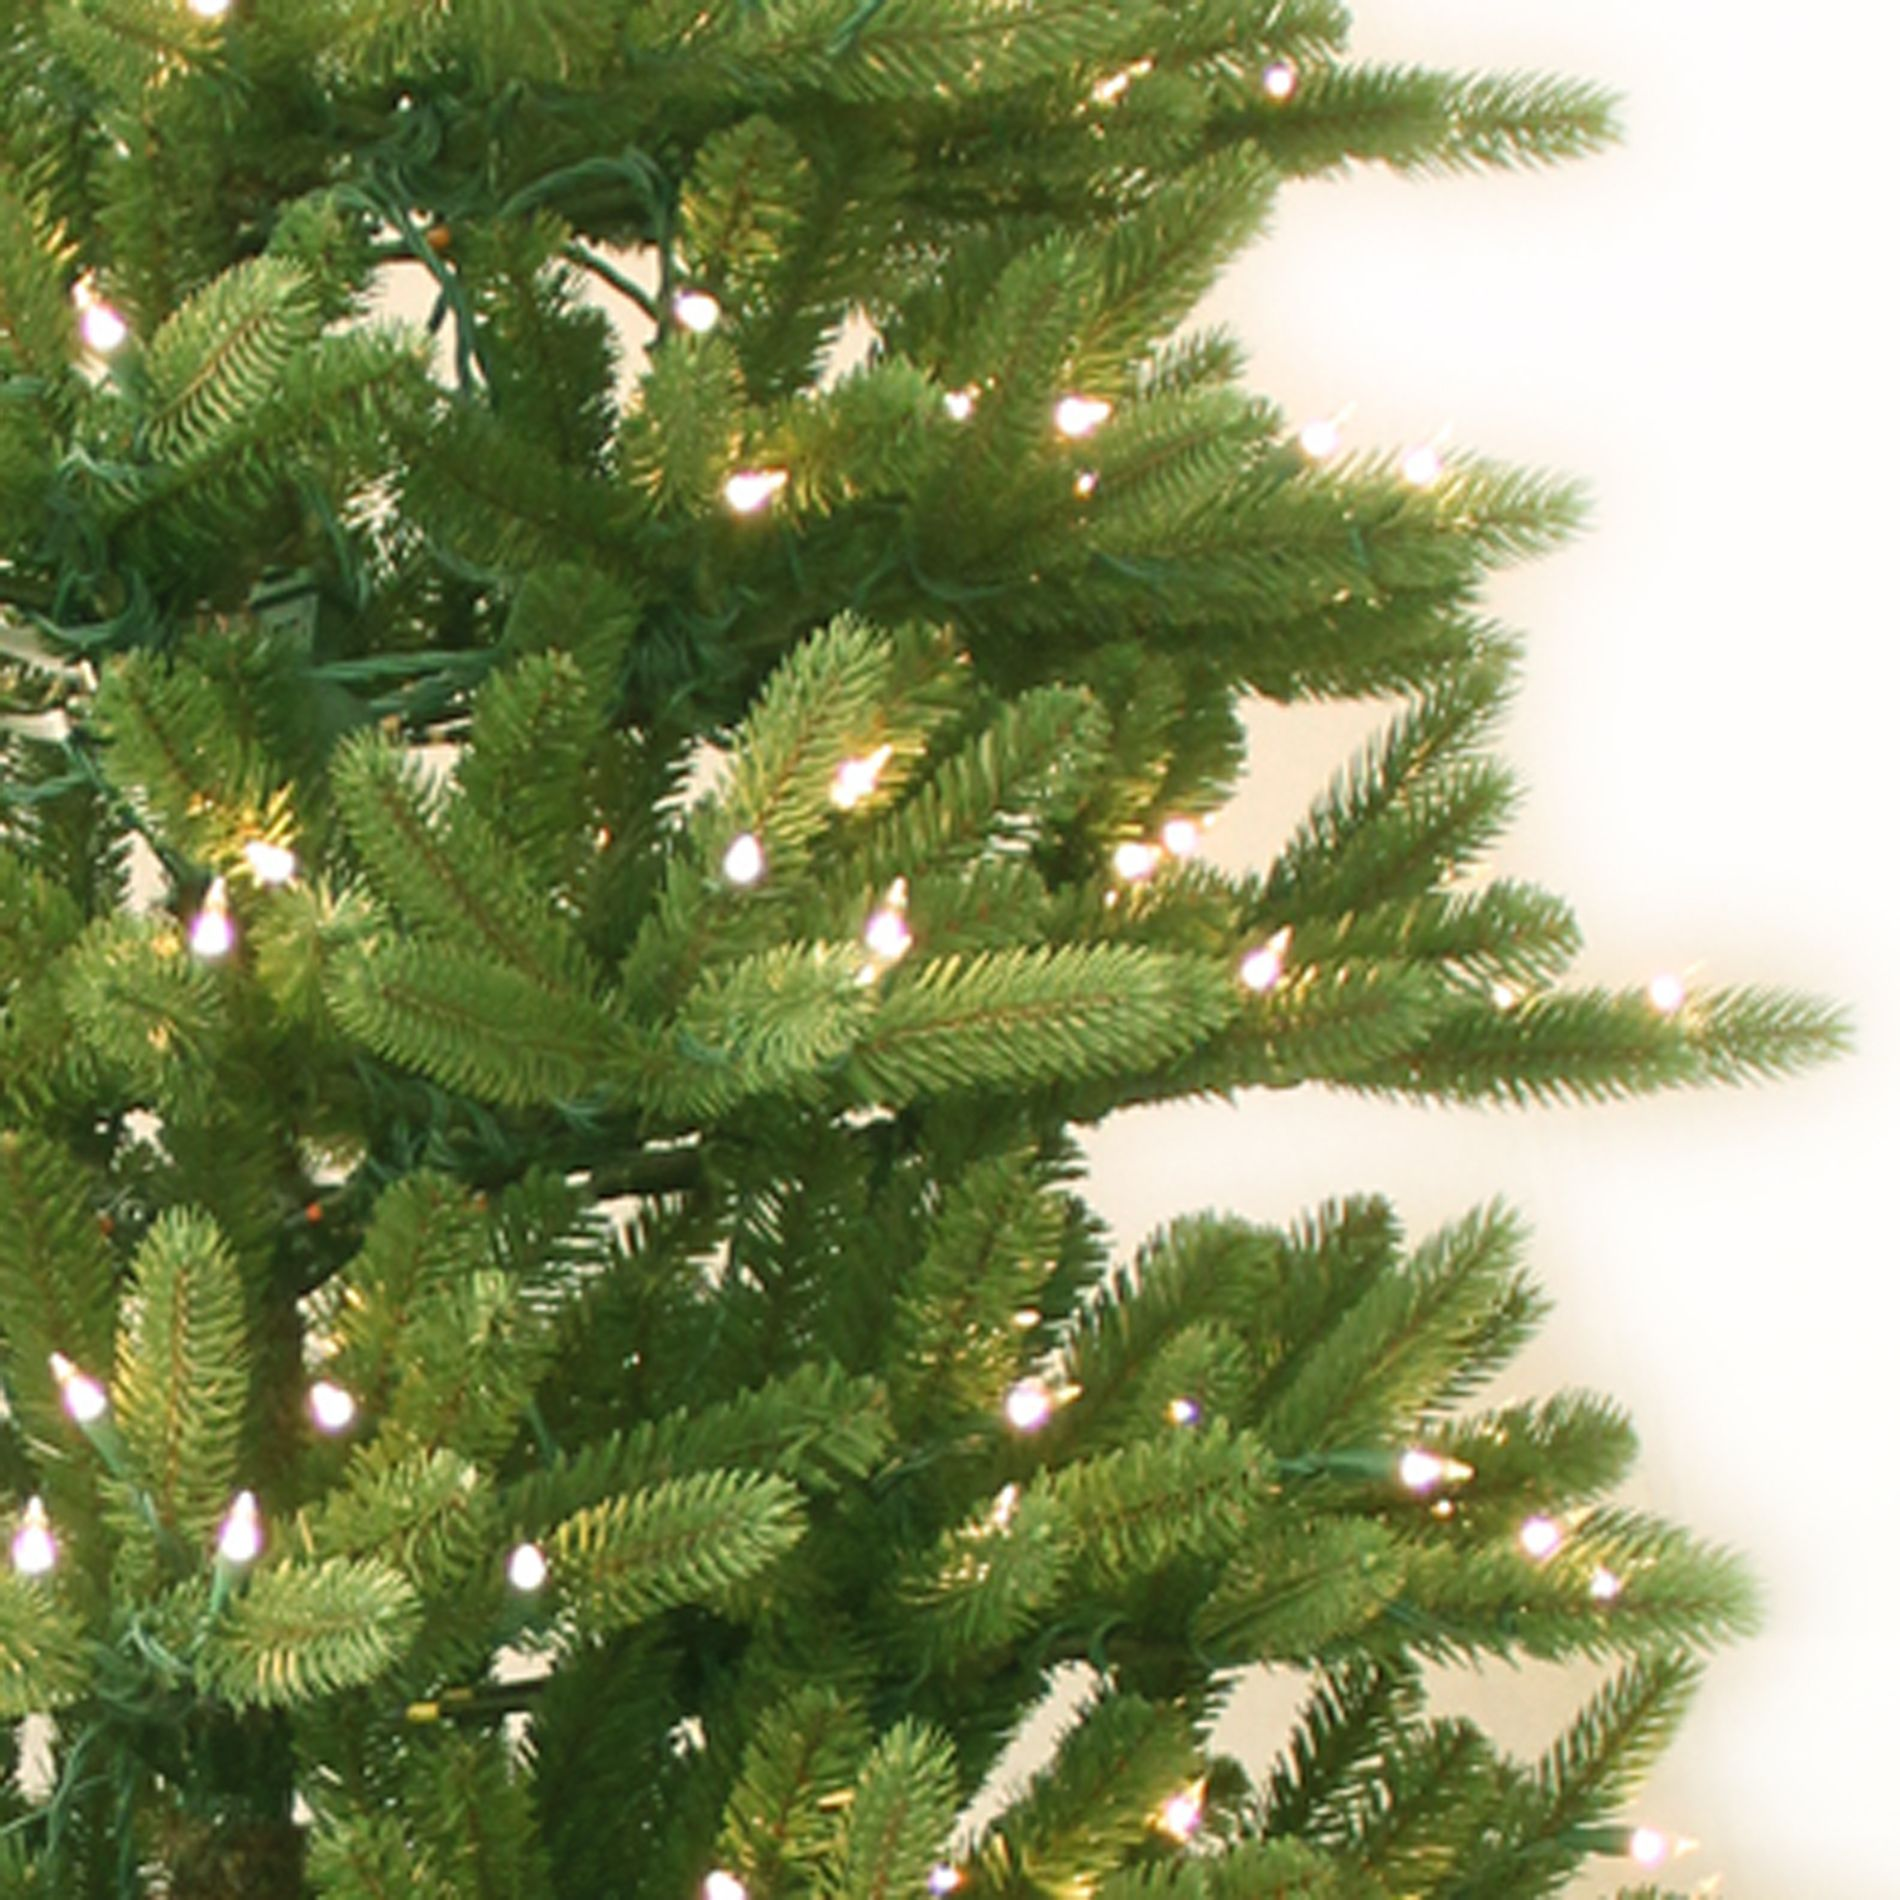 GE 7.5 Ft Clear Pre-Lit Just Cut Natural Frasier Fir Slim Artificial Christmas Tree